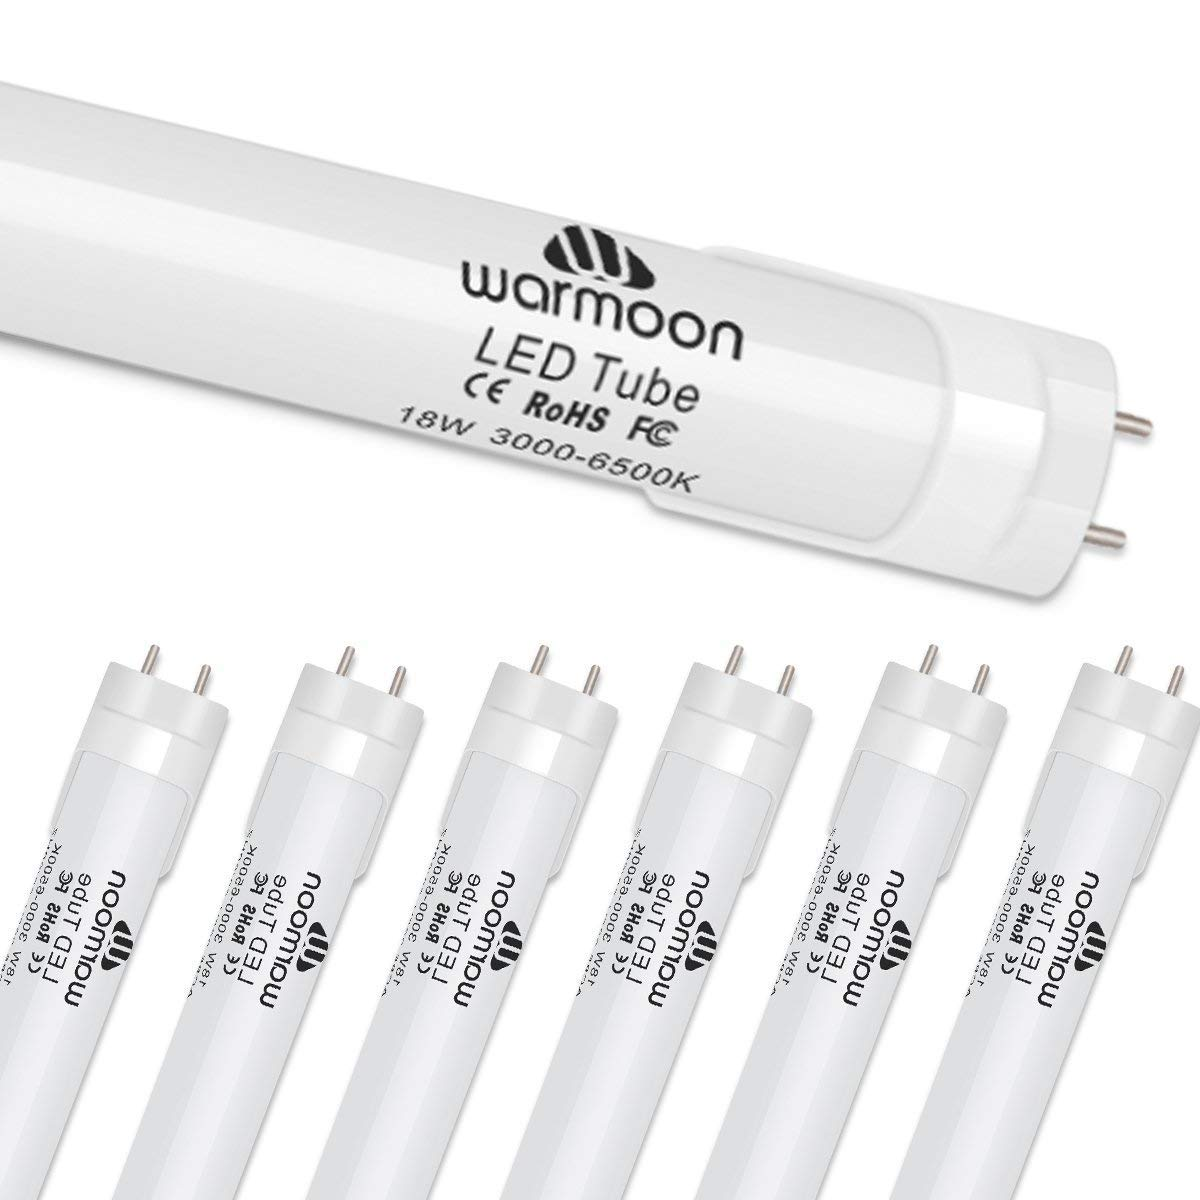 Warmoon T8 LED Light Bulbs 4 Foot 18W Equivalent 40W Frosted Cover DSW 3-in-1 3000K-6500K Color Changing Tube for Shop Hospitals Supermarkets Schools Offices - 6 Pack